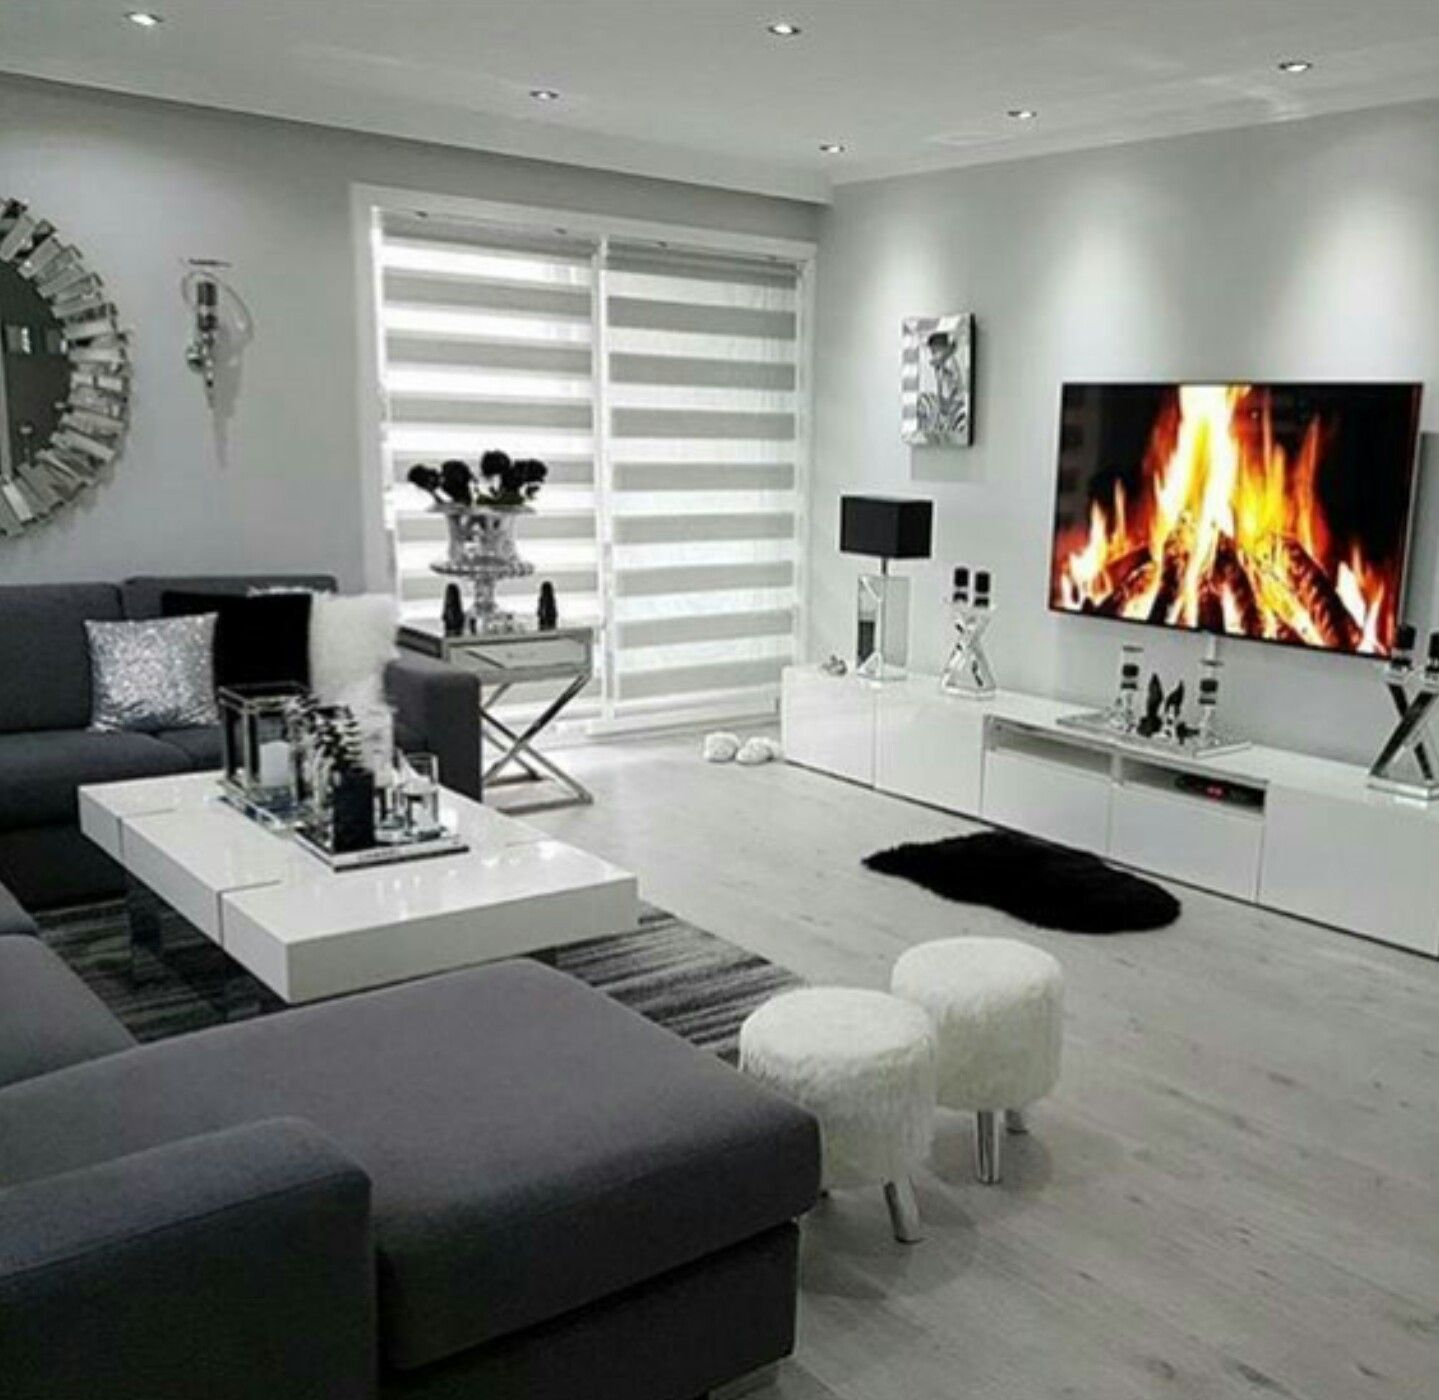 family room home ideas wohnzimmer wohnzimmer ideen schlafzimmer schrank. Black Bedroom Furniture Sets. Home Design Ideas